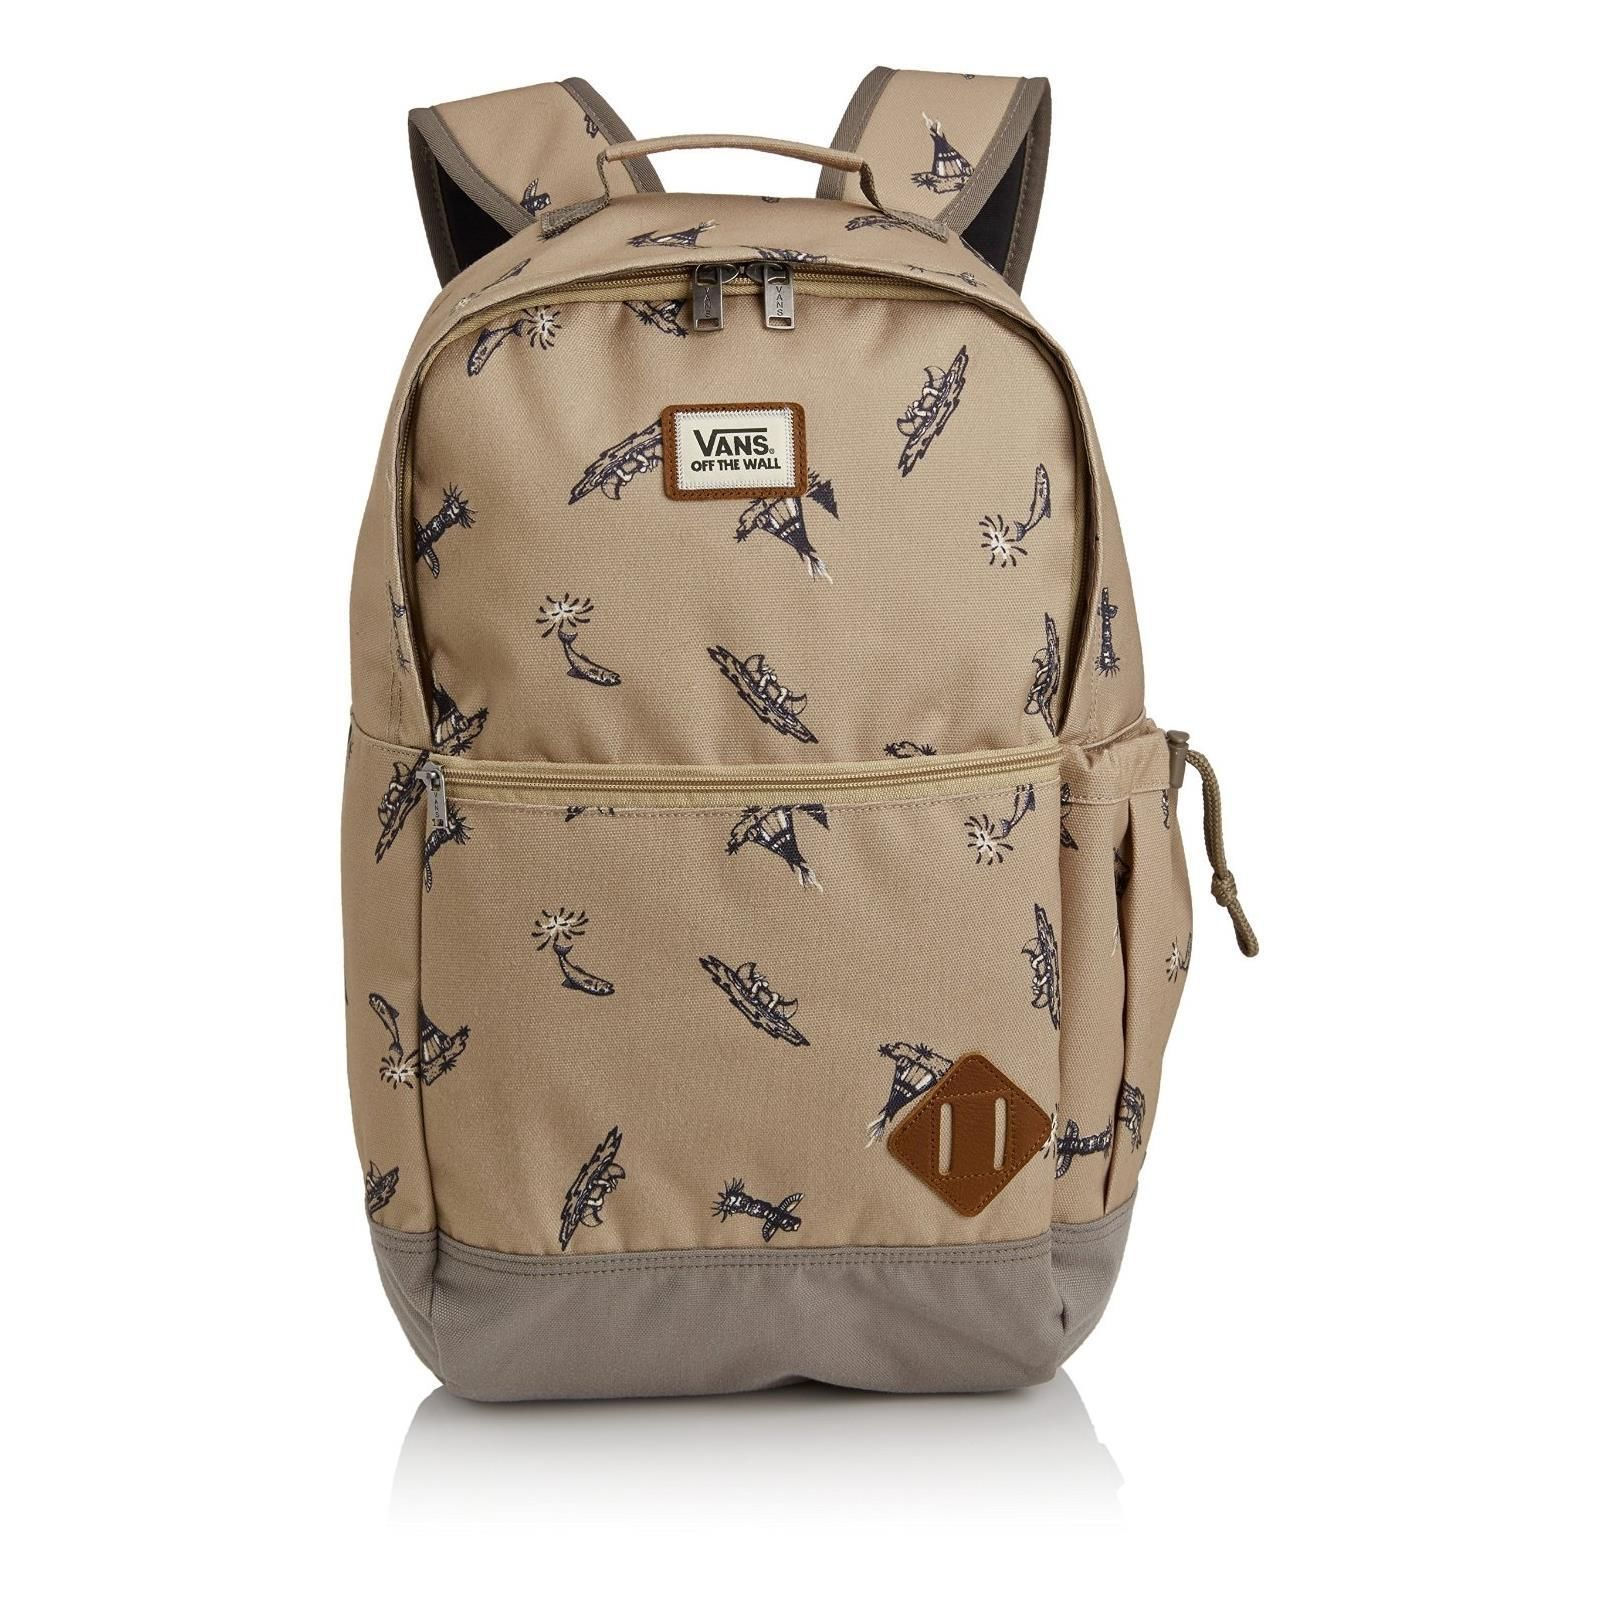 vans backpack running backpack backpacks canada